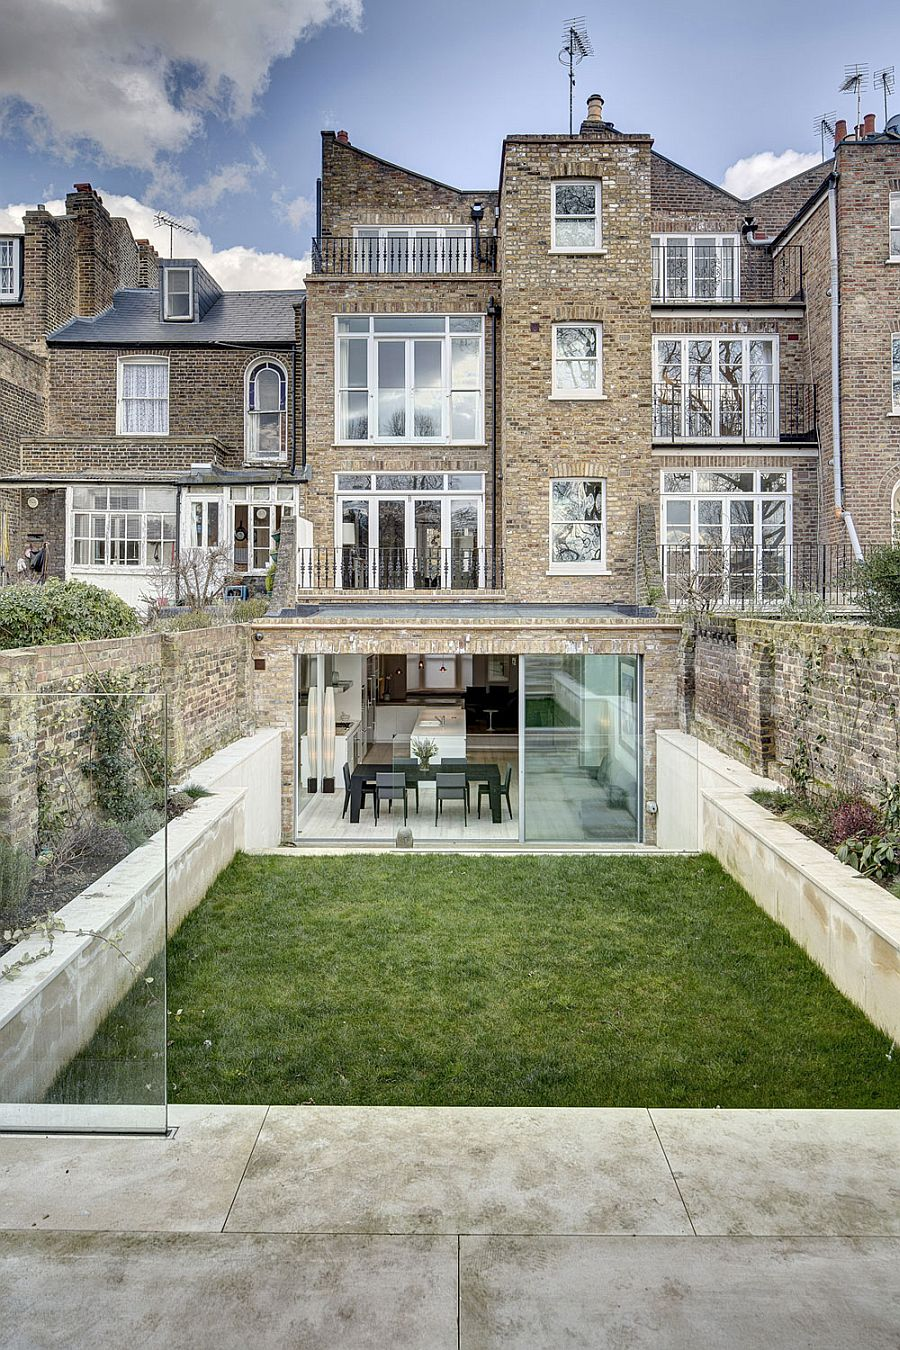 Classic Victorian Townhouse with a contemporary extension in London Victorian Townhouse in London Gets a Classy Contemporary Extension